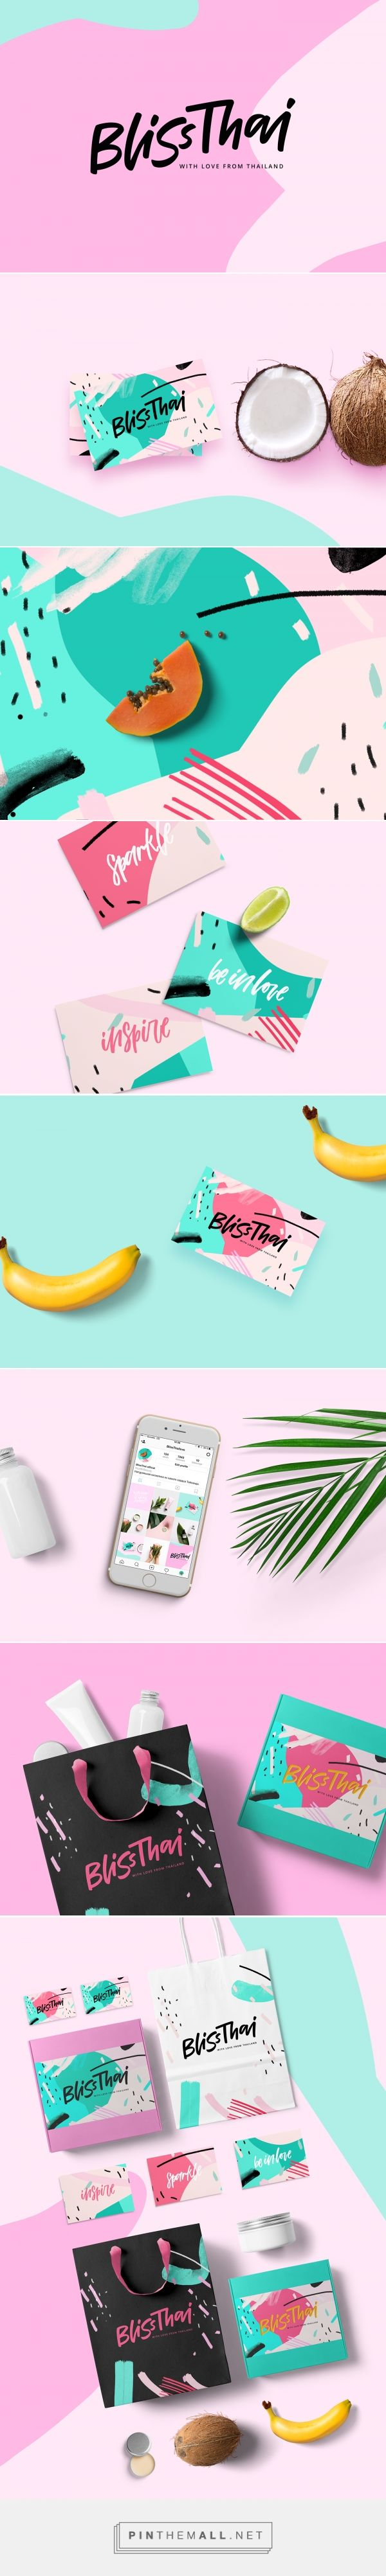 Bliss Thai Online Shop Branding by Daria Kwon | Fivestar Branding Agency – Design and Branding Agency & Curated Inspiration Gallery